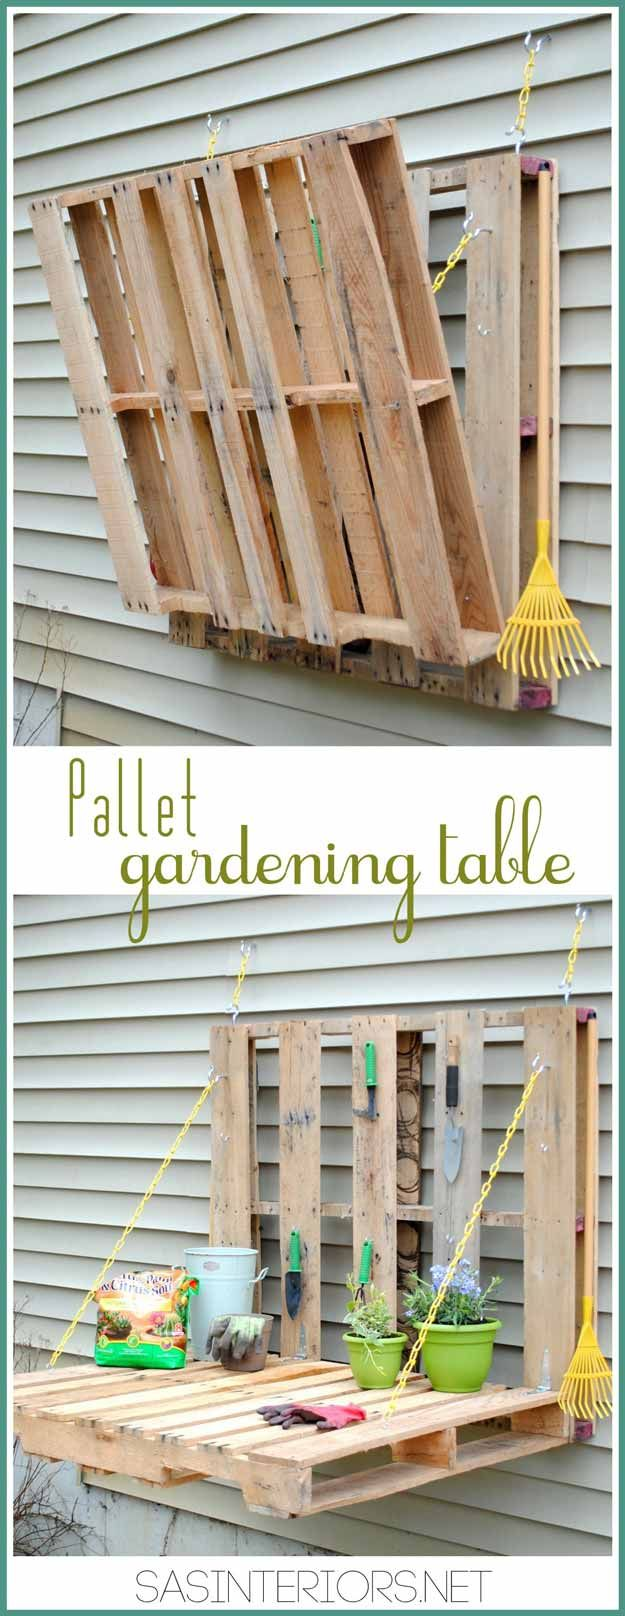 25 best ideas about garden projects on pinterest diy for What can you make with recycled pallets